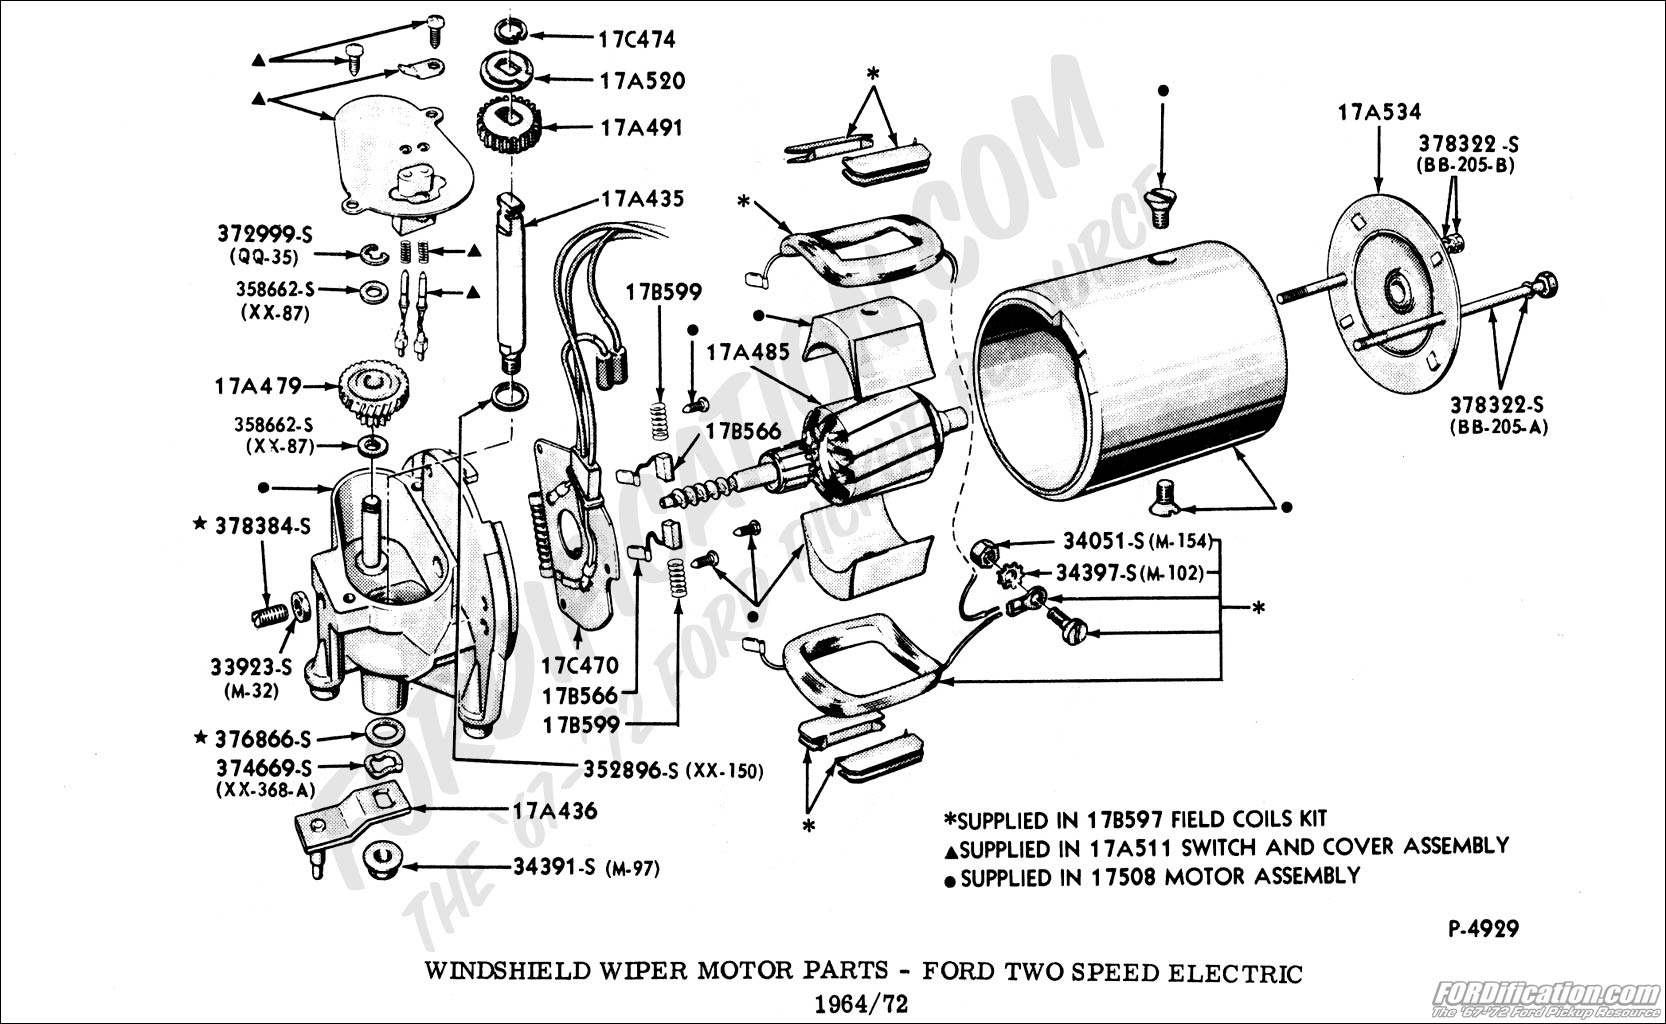 4gwmv 1984 Cadillac Deville Wiring Diagram Passanger Side Side Door likewise RepairGuideContent further Ubbthreads moreover 1344560 Ac Bracket For A 1967 F100 300 Engine Underdash Unit 11 also Willys Pickup Wiring Diagrams. on 1982 corvette engine manual diagram